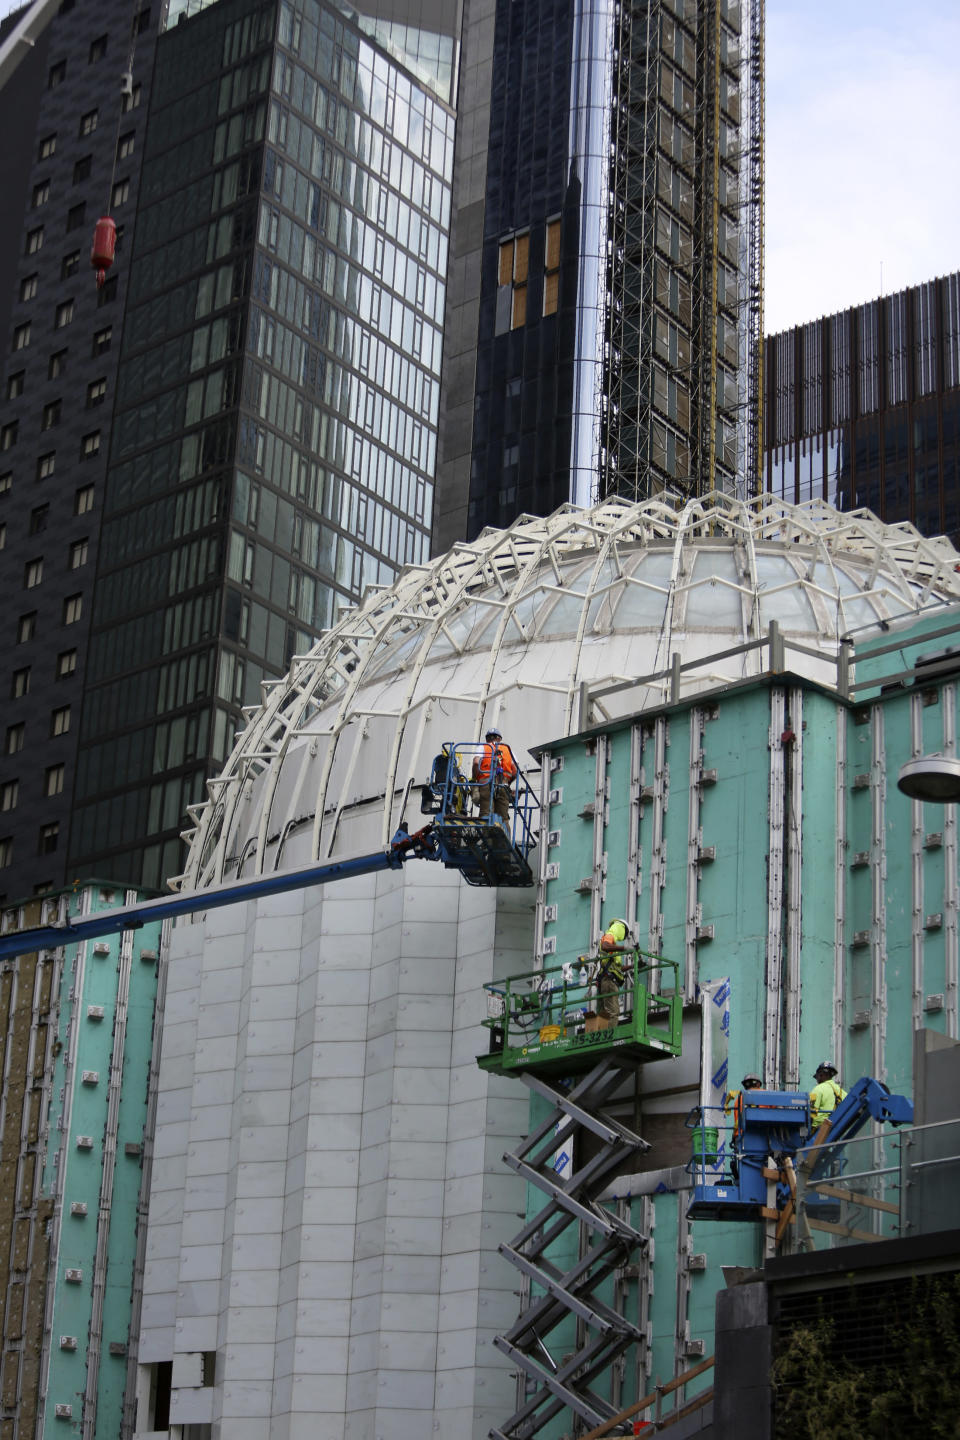 Workers install marble on the exterior of St. Nicholas Greek Orthodox Church and National Shrine, the only house of worship on ground zero, on Thursday, July 22, 2021, in New York. Through an innovative process, interior lights are being designed to illuminate thin panels of marble mined from the same Pentelic vein in Greece that sourced the Parthenon, the ancient temple in Athens. The shrine will have a ceremonial lighting on the eve of the 20th anniversary of the Sept. 11, 2001 attacks, while the interior is slated for completion next year. (AP Photo/Jessie Wardarski)